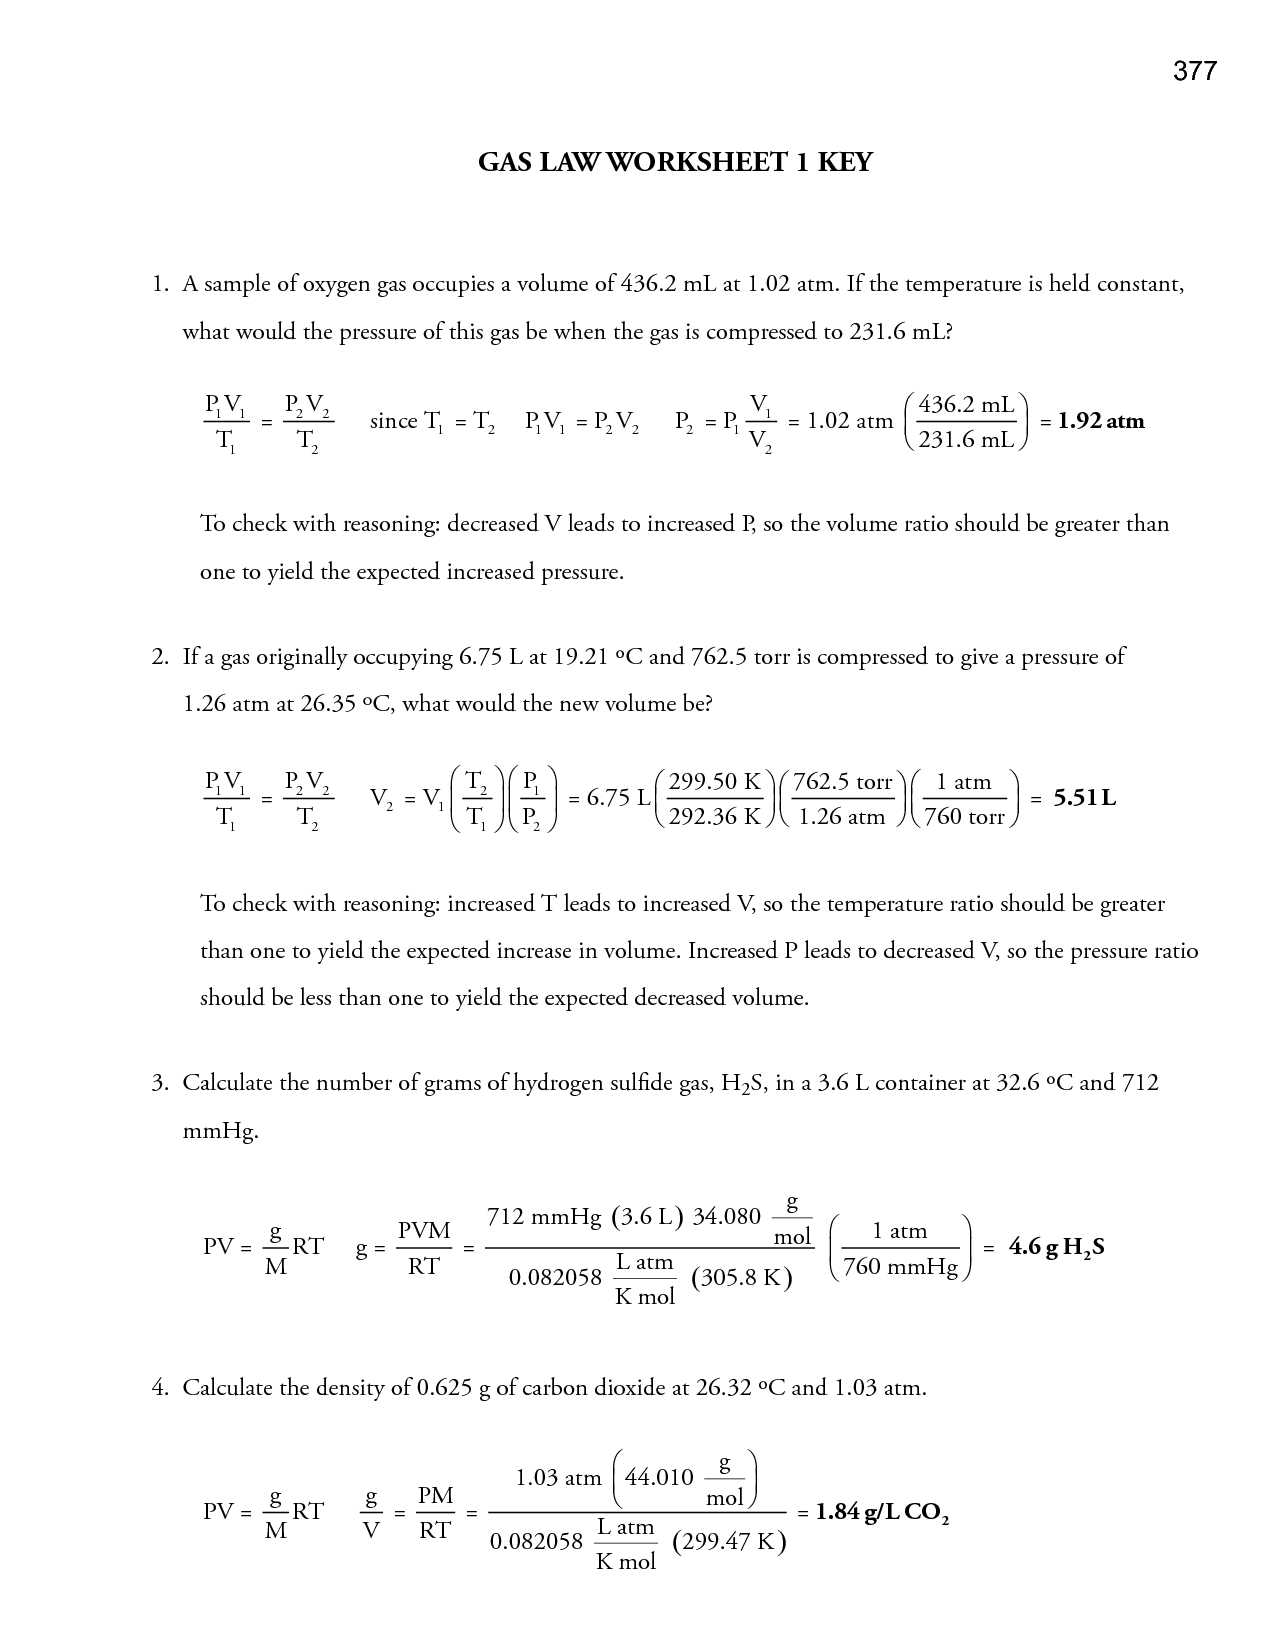 Gas Laws Practice Worksheet Also Gas Laws Worksheets with Answers Choice Image Worksheet for Kids